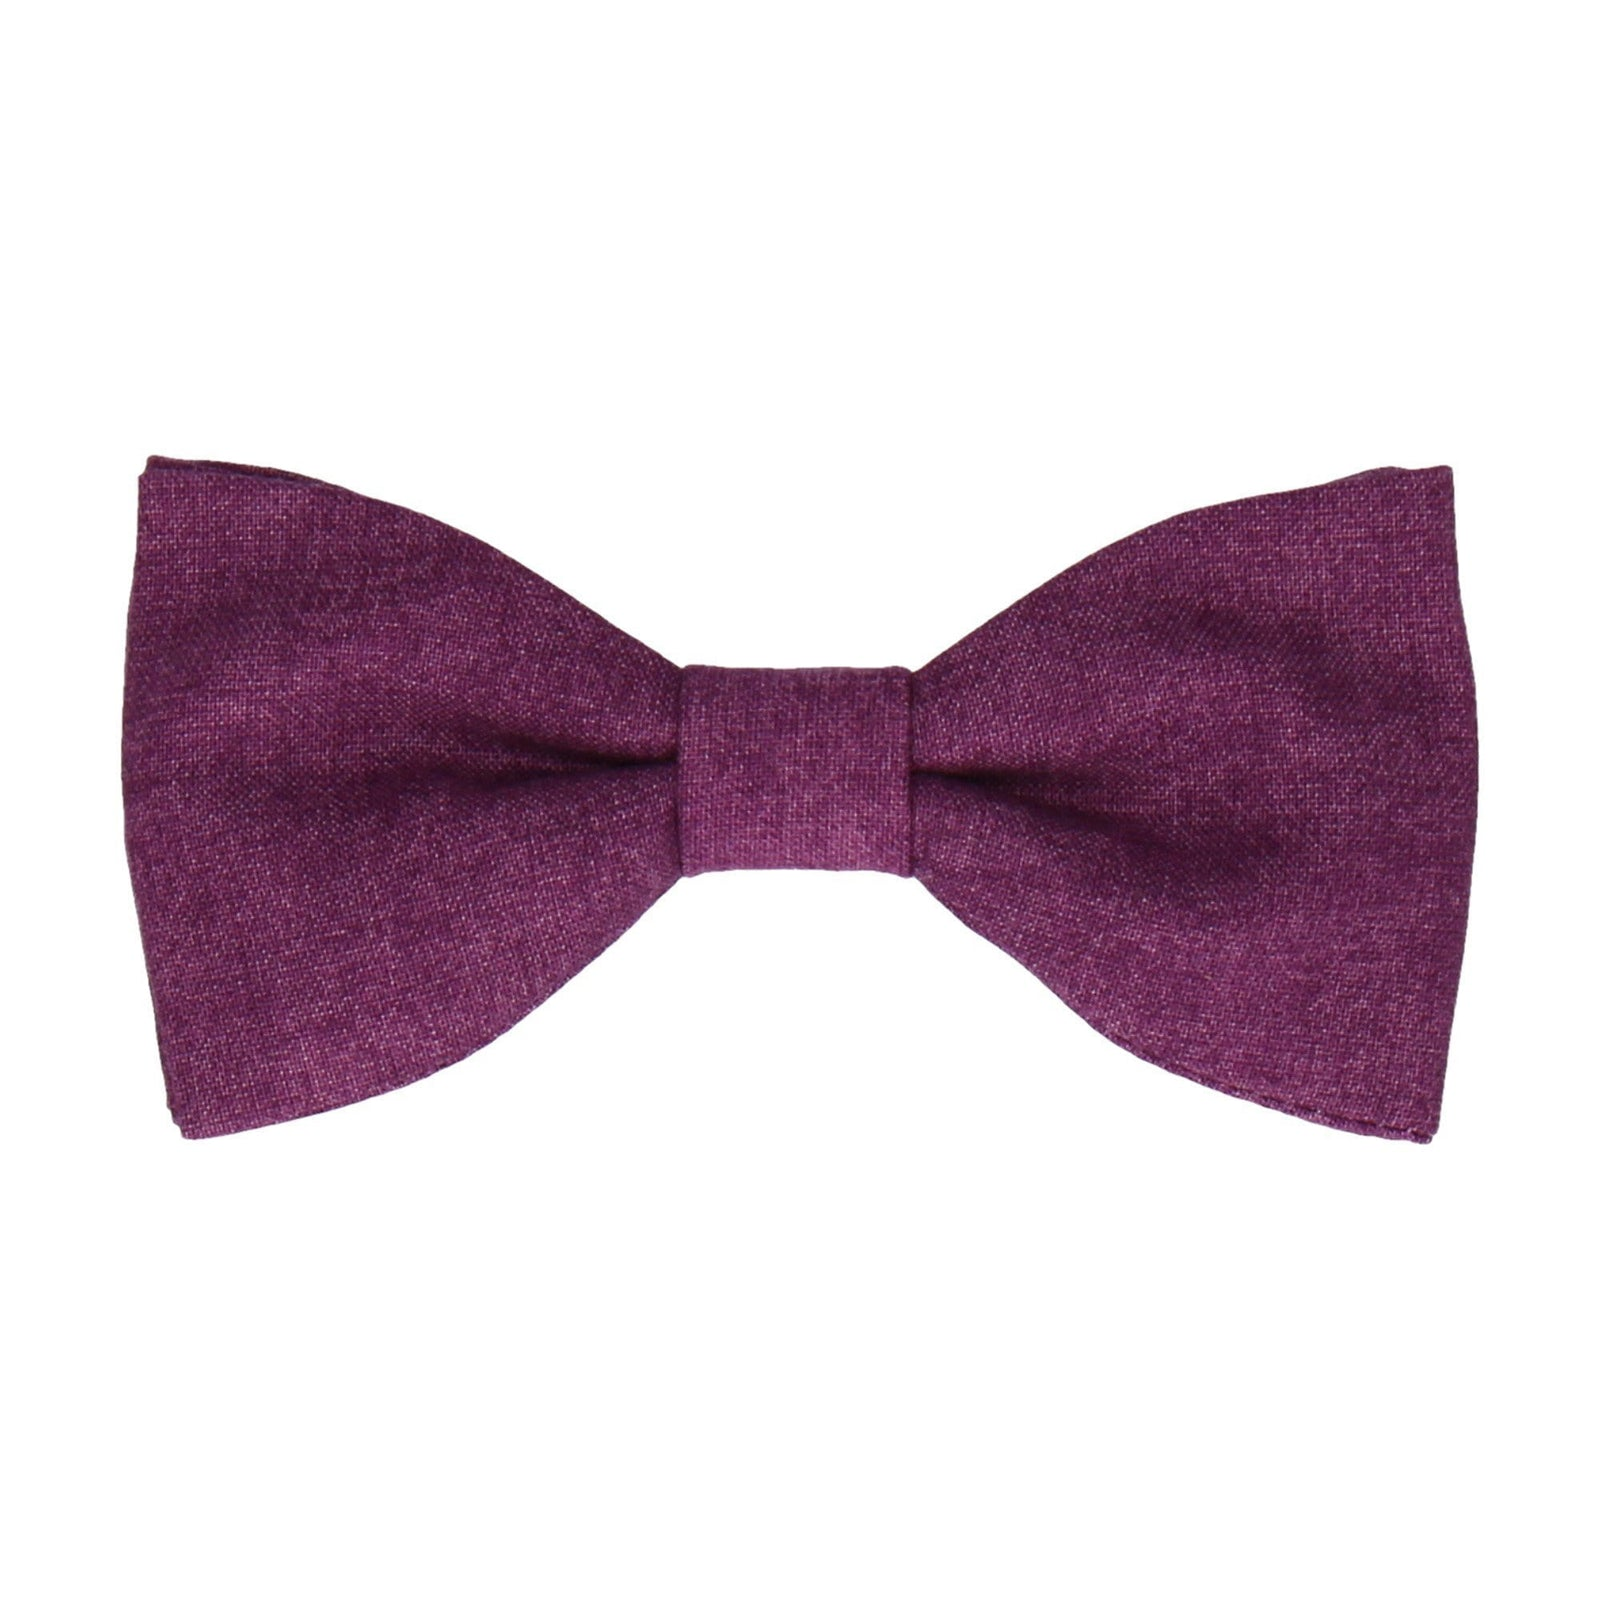 Cotton Purple Marl Bow Tie